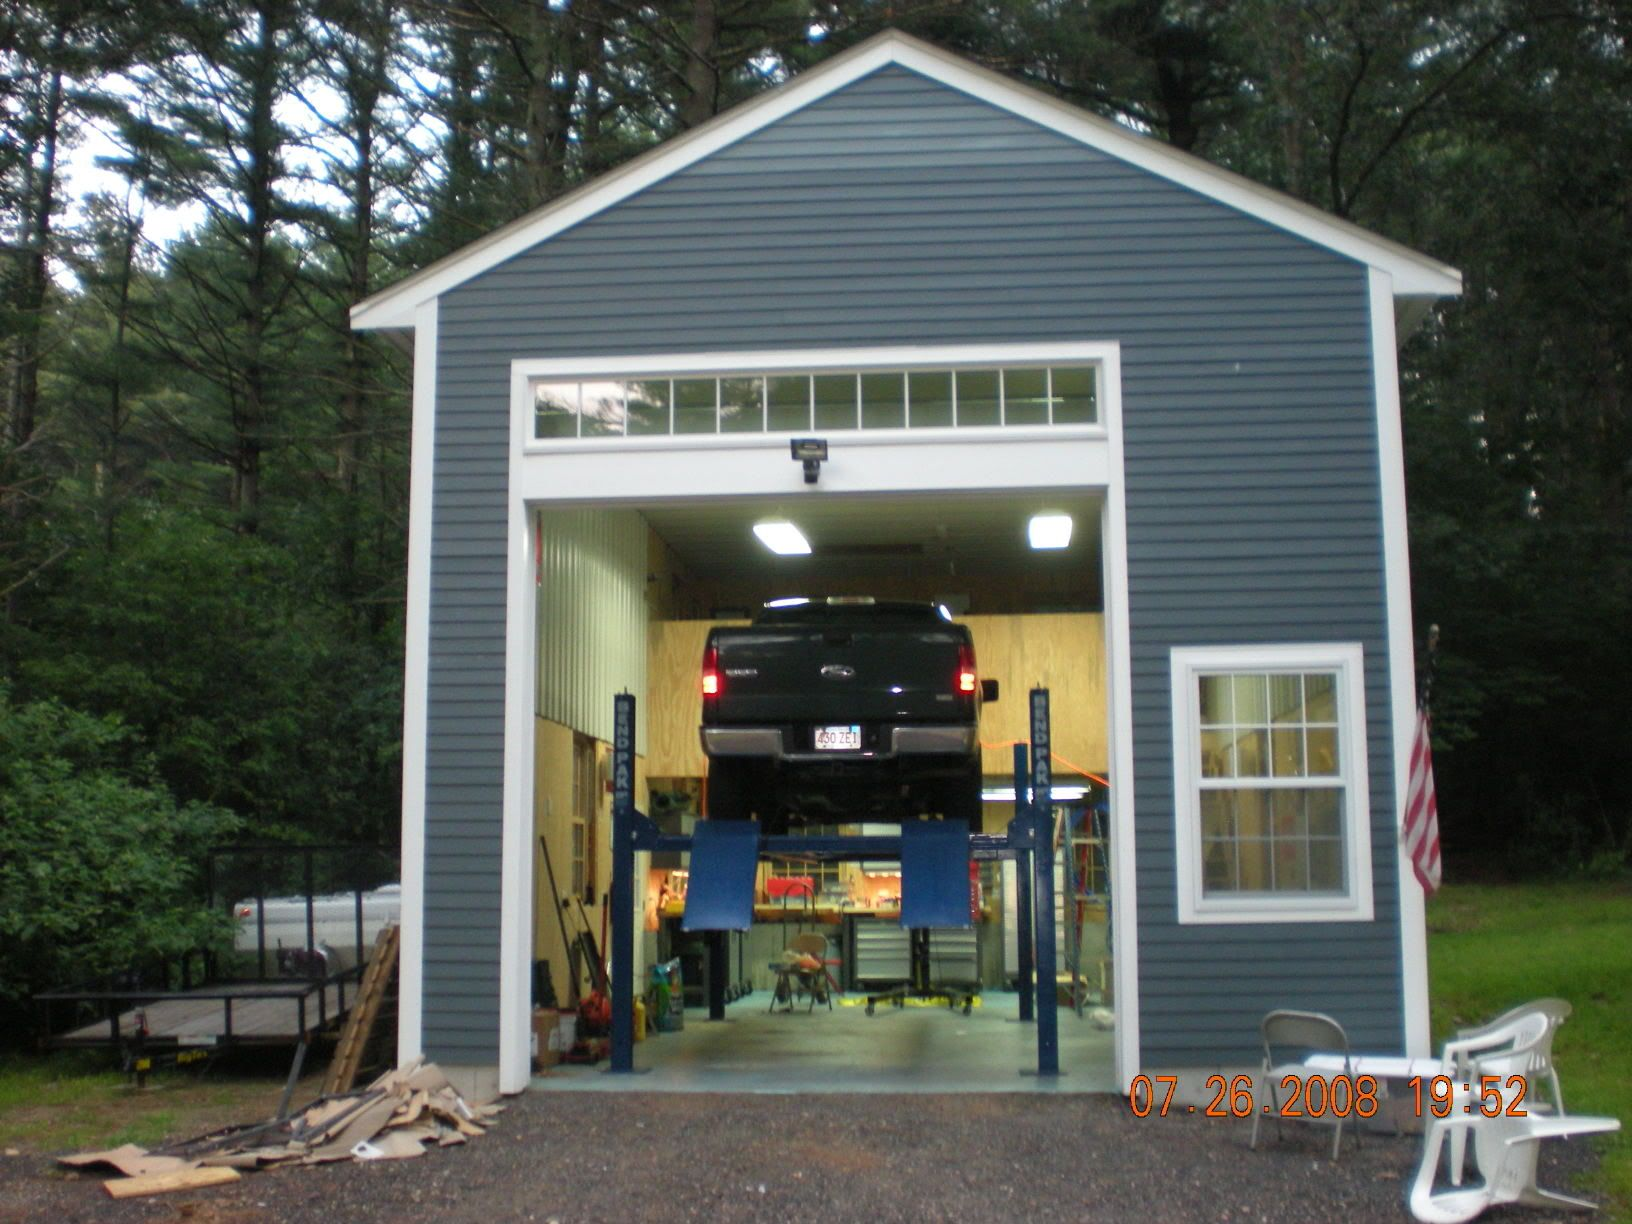 More ideas below: How To Build detached garage ideas detached garage 2 Car  With Loft plans Man Cave detached garage with apartment DIY Barn detached  garage ...